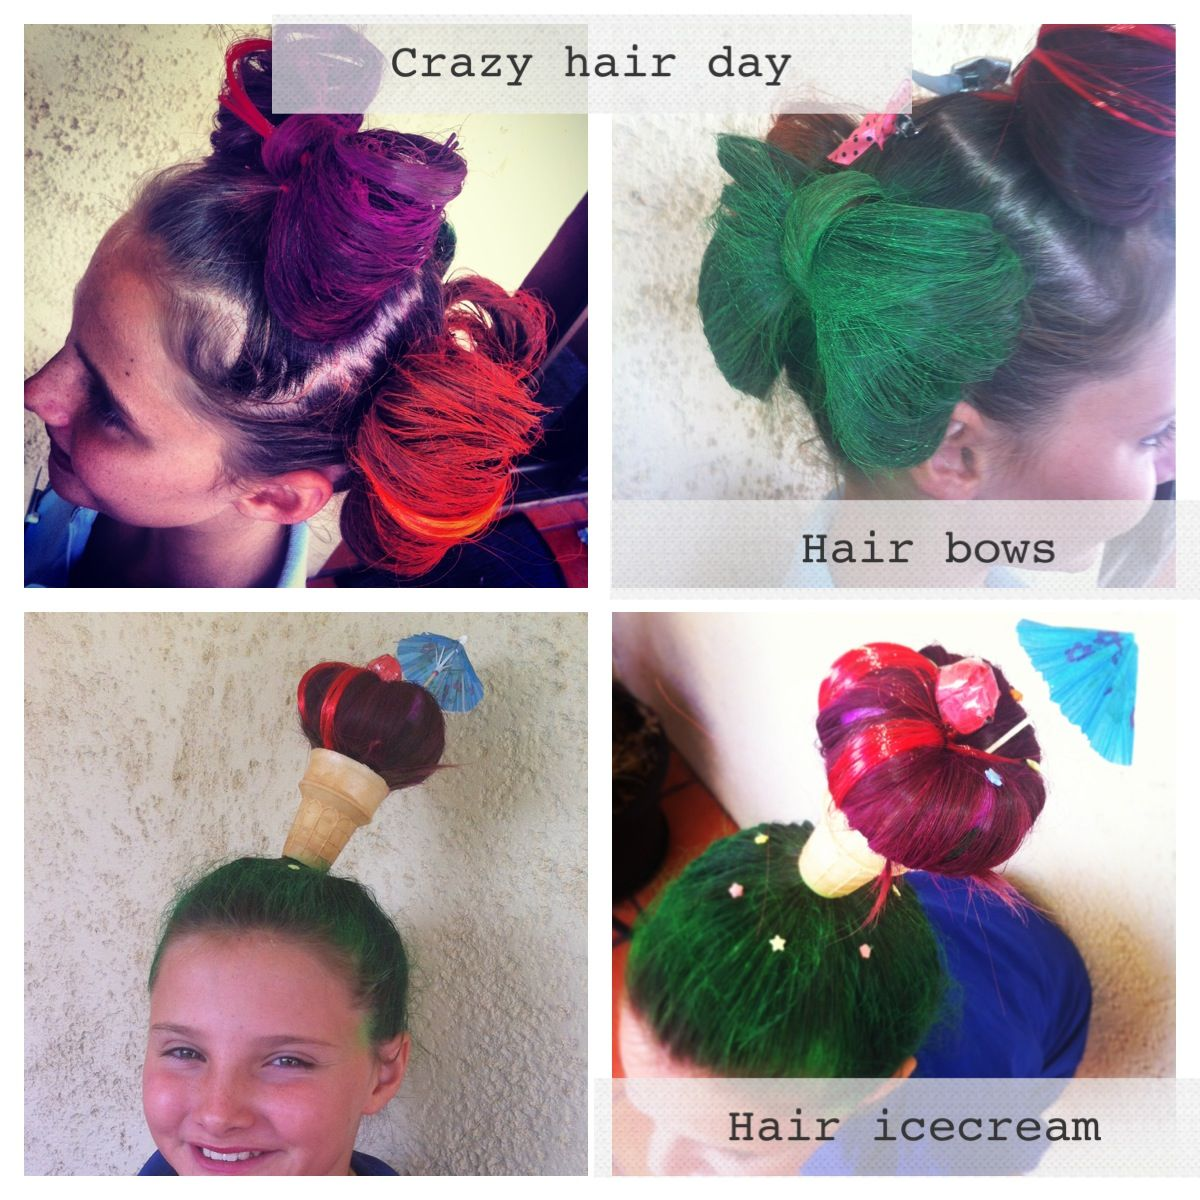 Crazy Hairstyles Crazy Hair Day #hairstyles For Kids Icecream Hair And Hair Bows